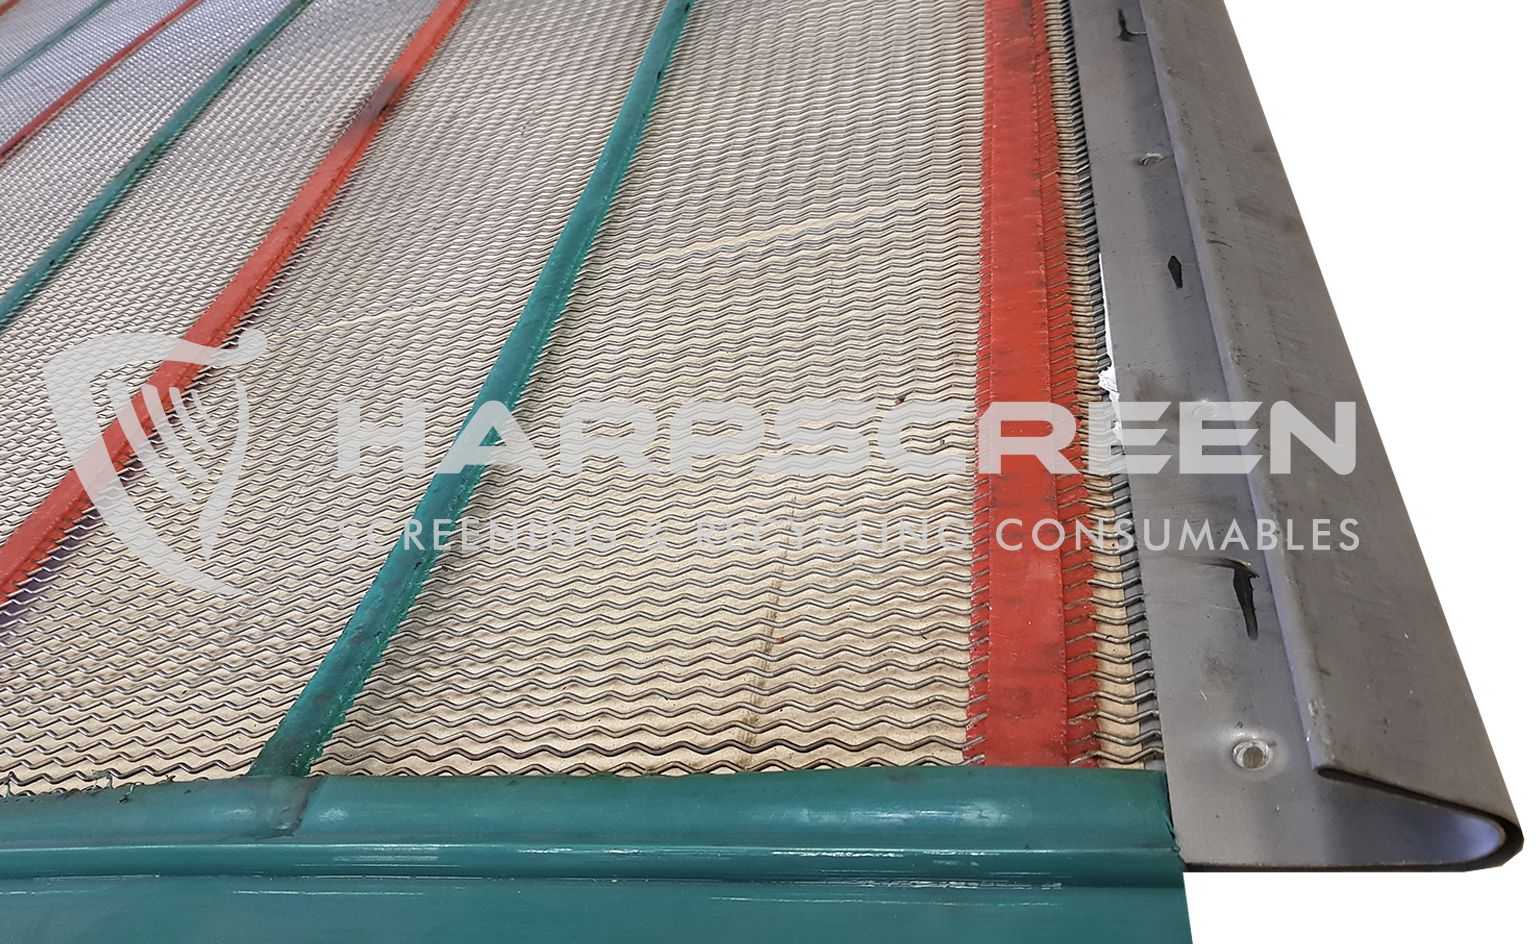 Zigzag self cleaning screen